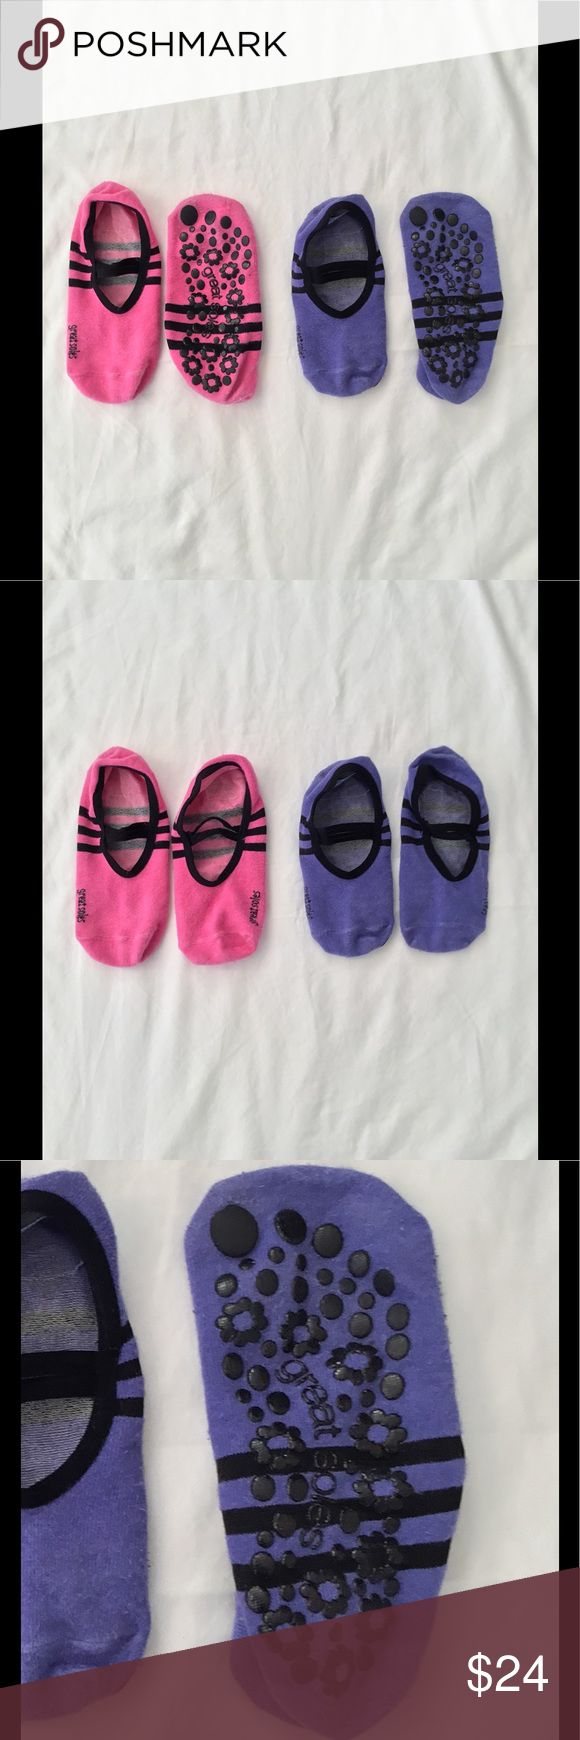 Great Soles sticky socks for barre - 2 pairs Great Soles sticky socks - perfect for Pure Barre, Bar Method, or any other time you need to rock stickies! 2 pairs, one pink and one purple, both with black detailing.  I love the straps along the top because they make me feel like a ballerina! GUC, lots of life left. Great Soles Other